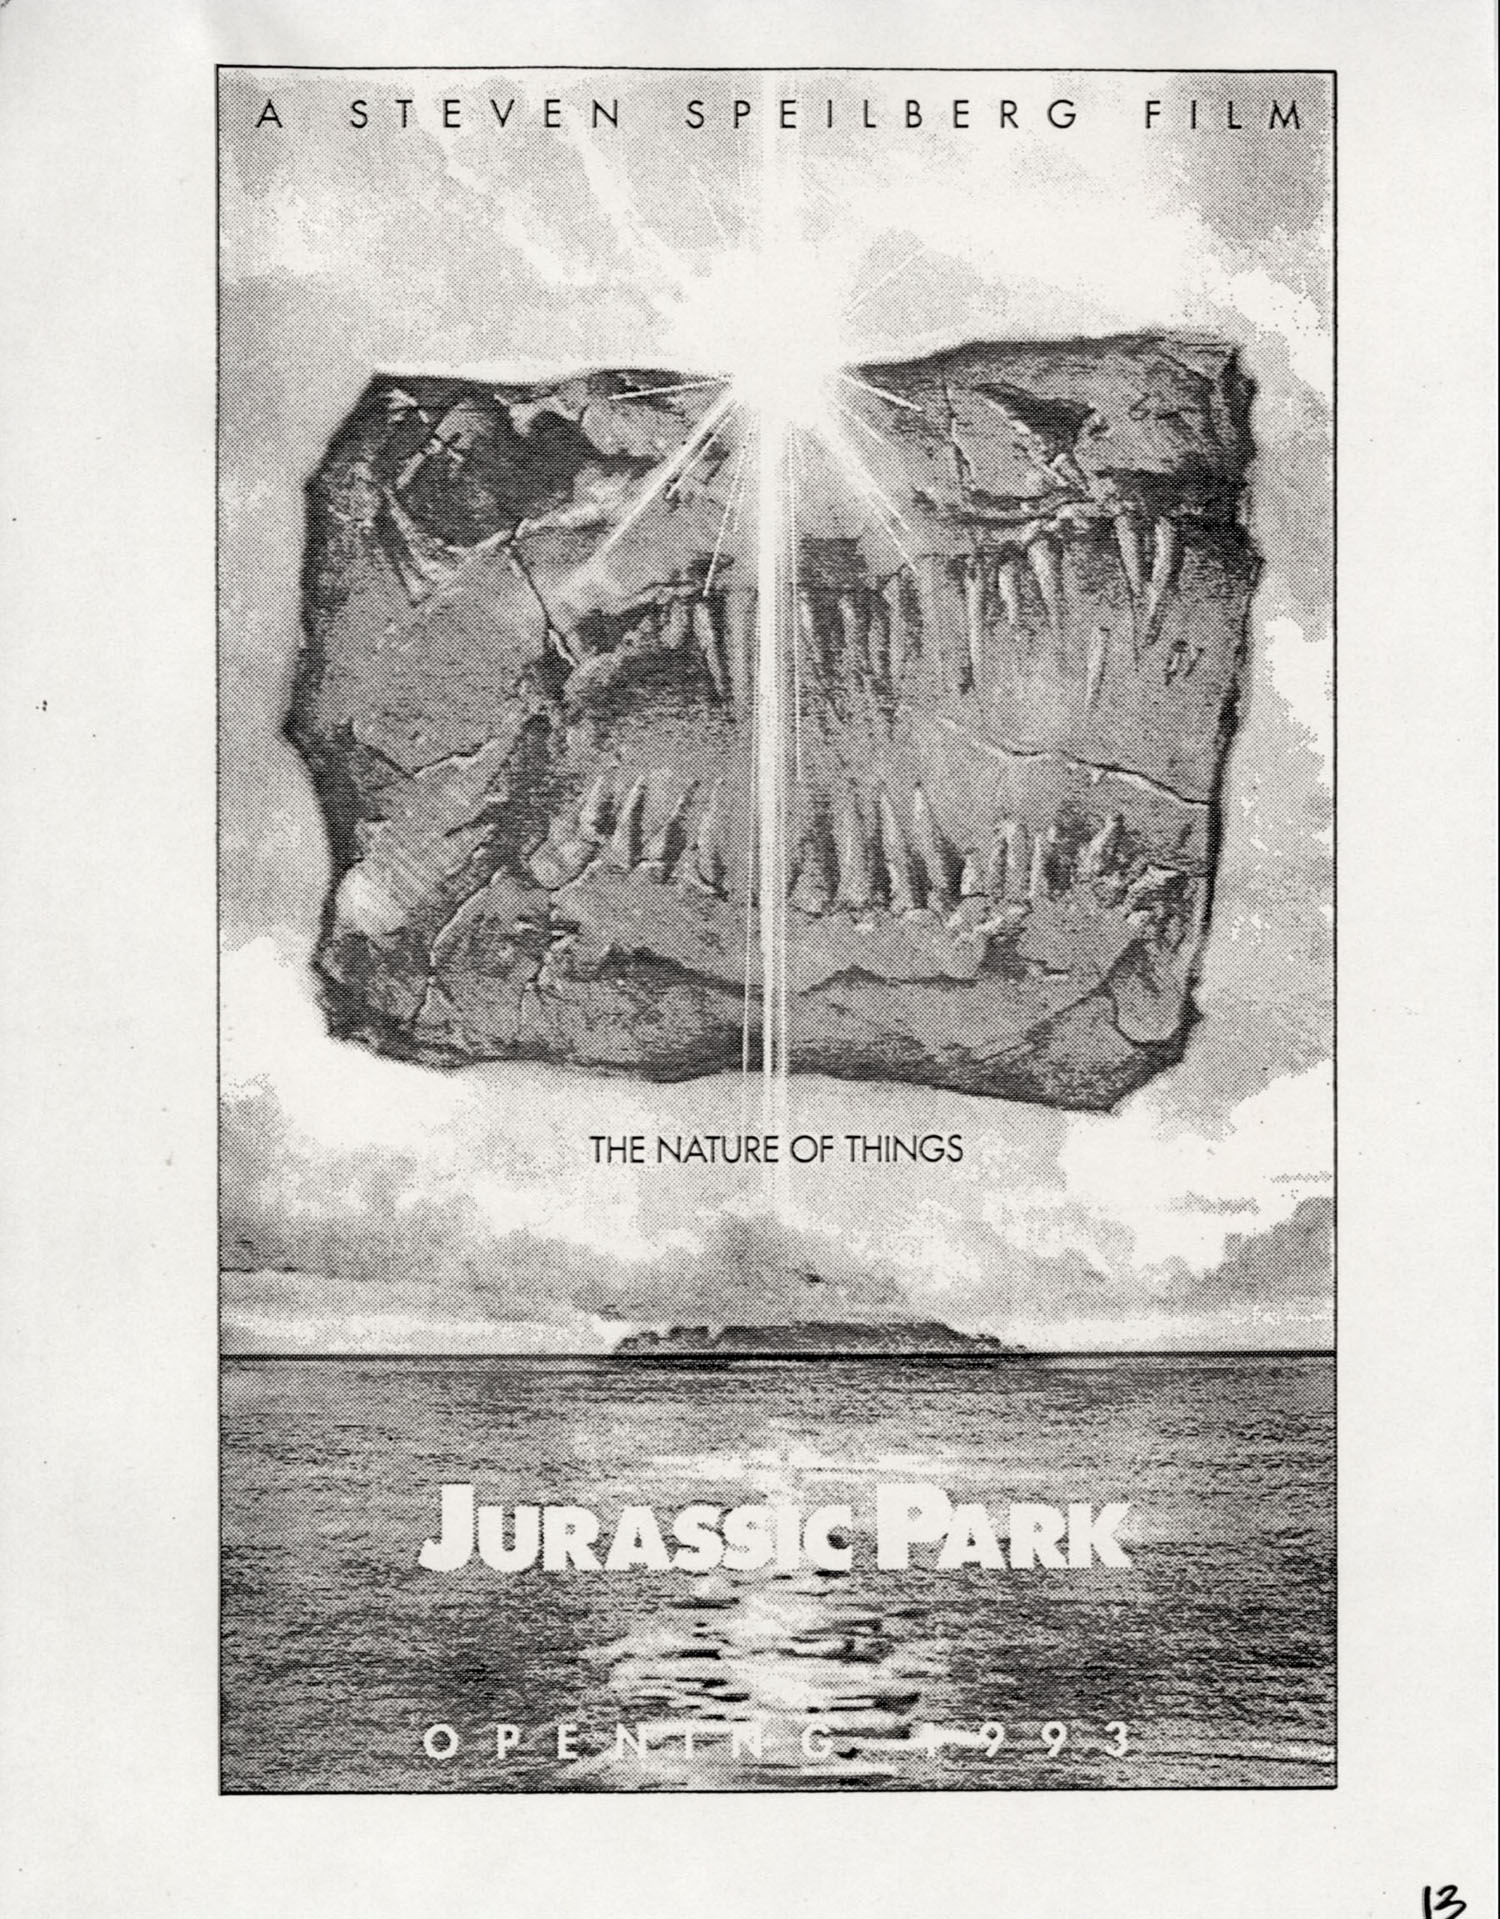 John Alvin   Jurassic Park poster   13 Exclusive: Over a Dozen Never Before Seen Jurassic Park Posters From Famous Artist John Alvin